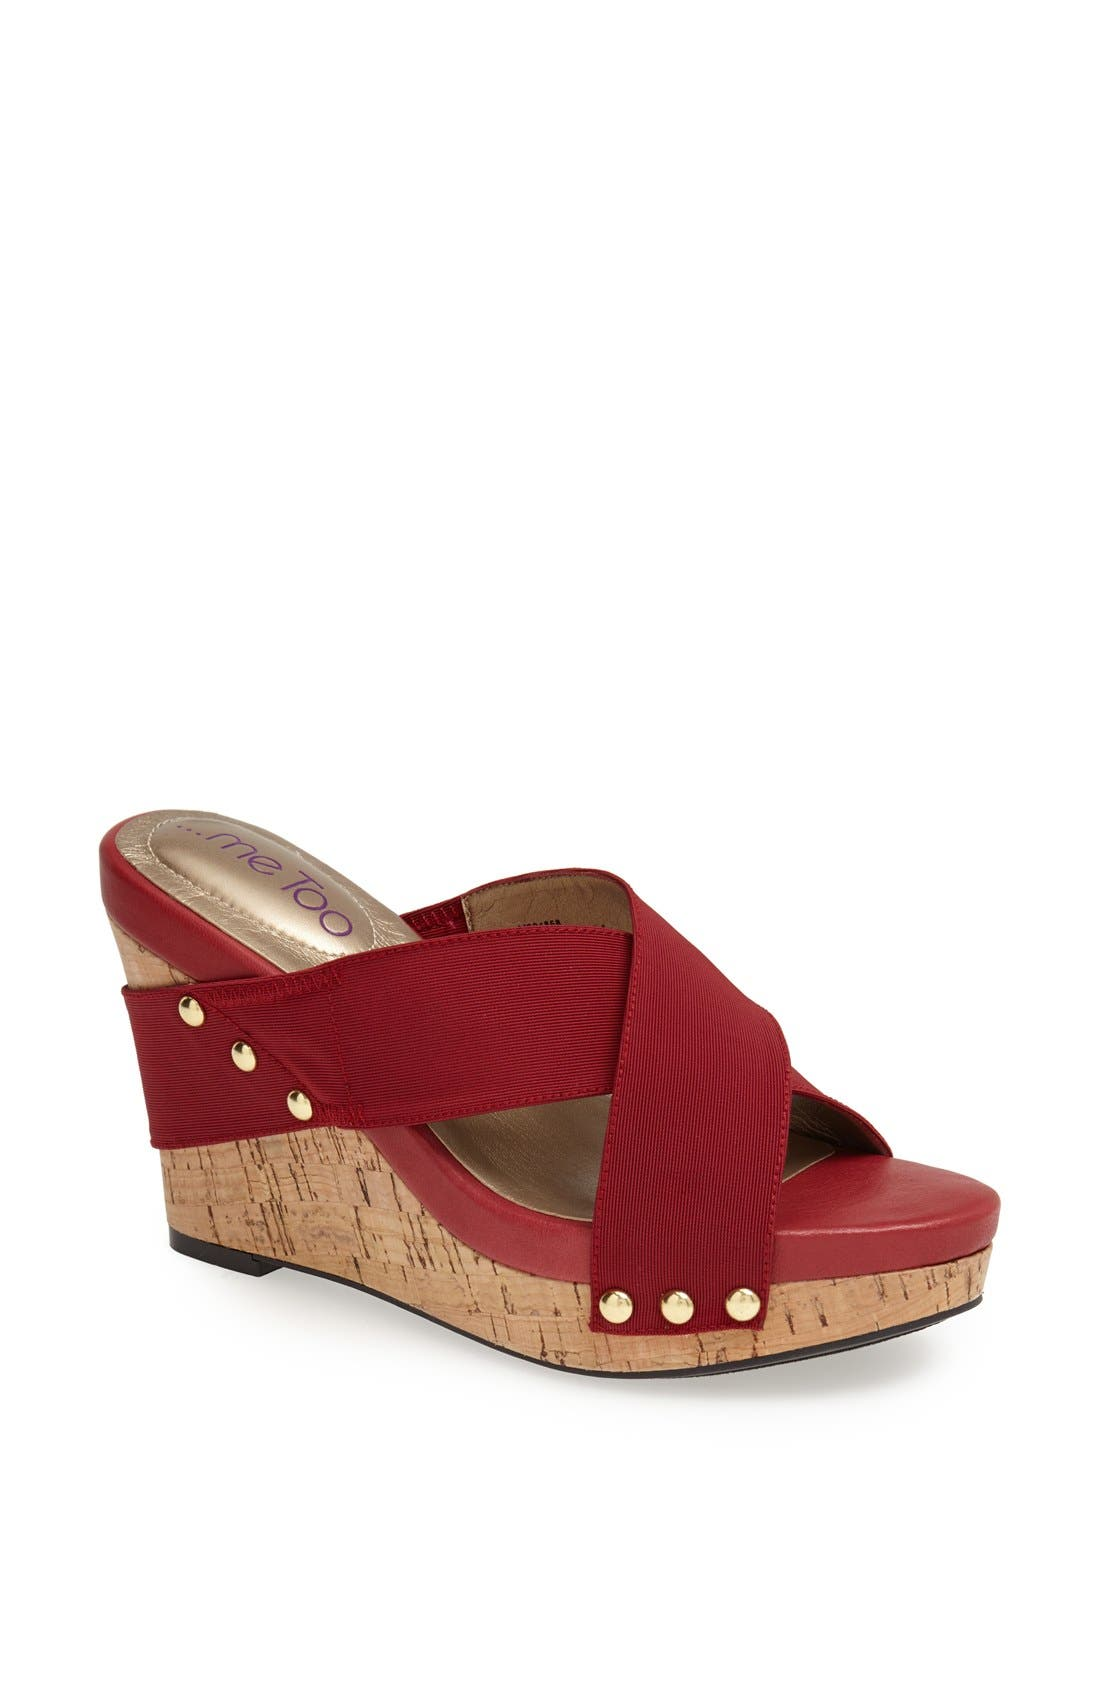 Main Image - Me Too 'Jessie' Wedge Sandal